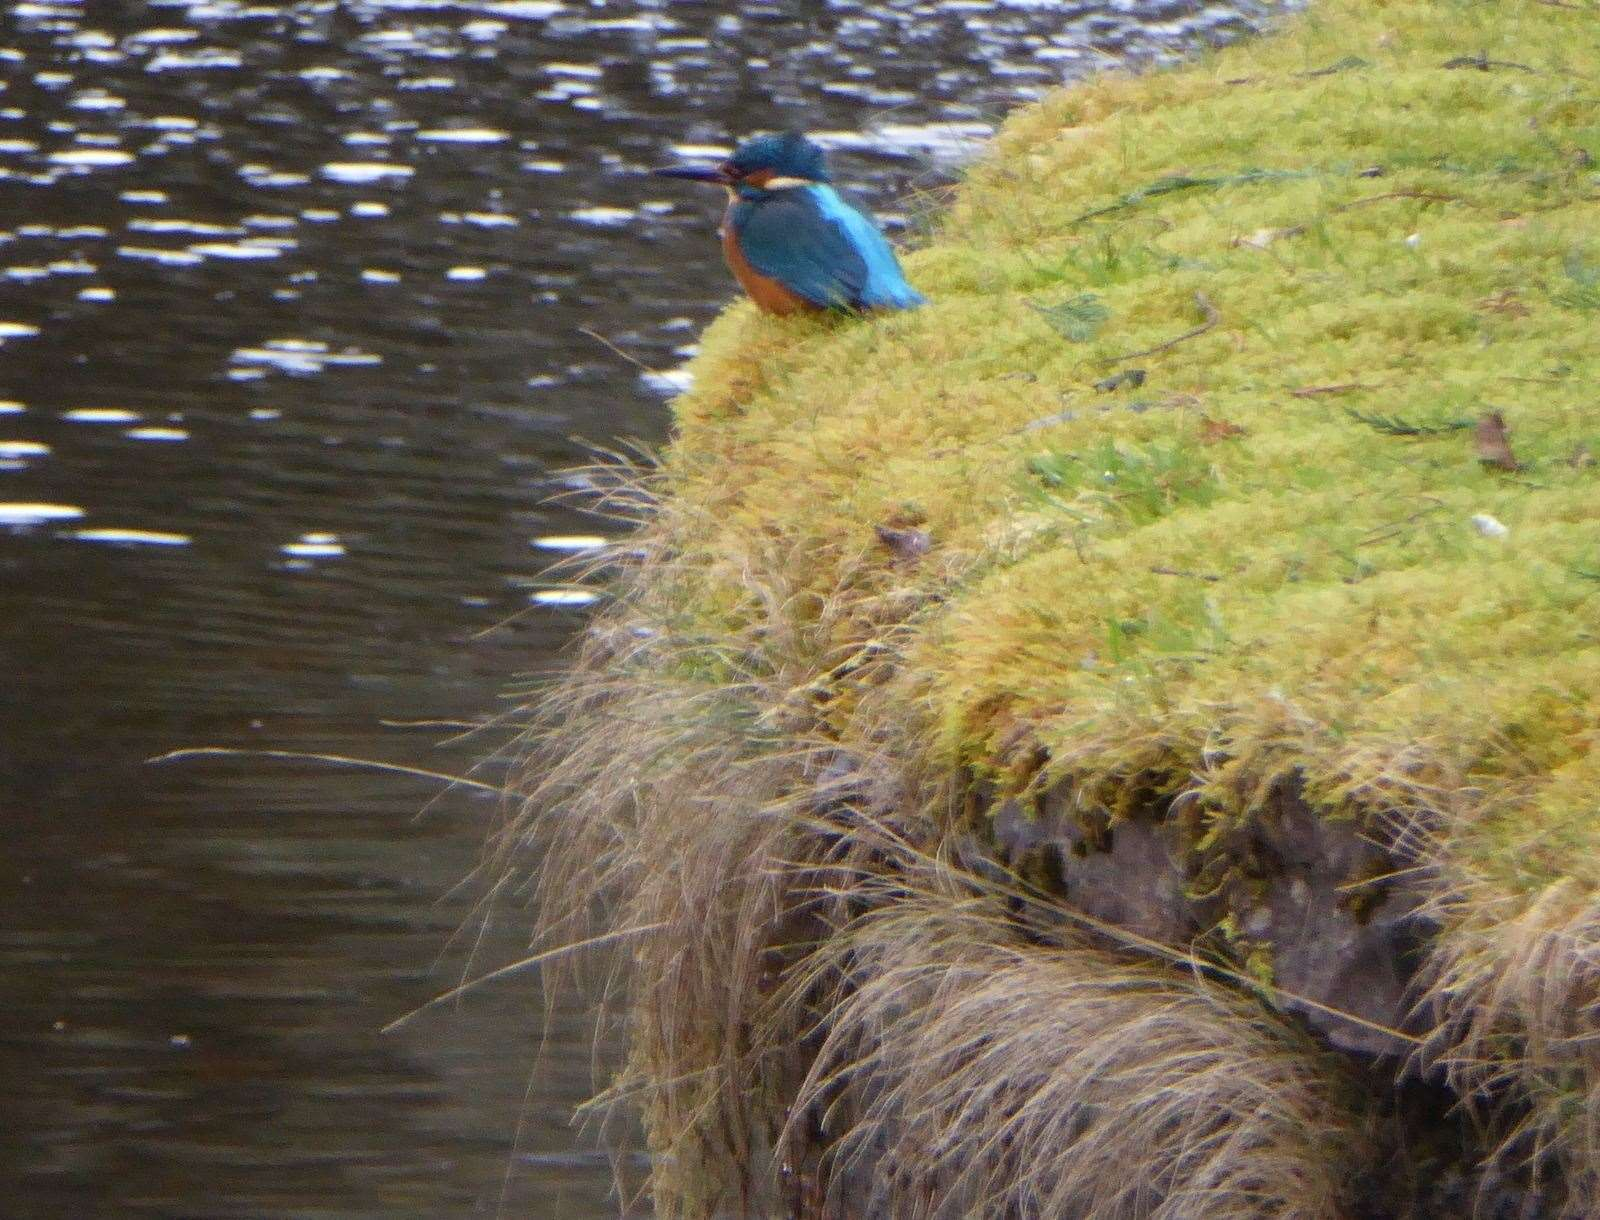 A Kingfisher that can often be seen in the same place in Whin Park